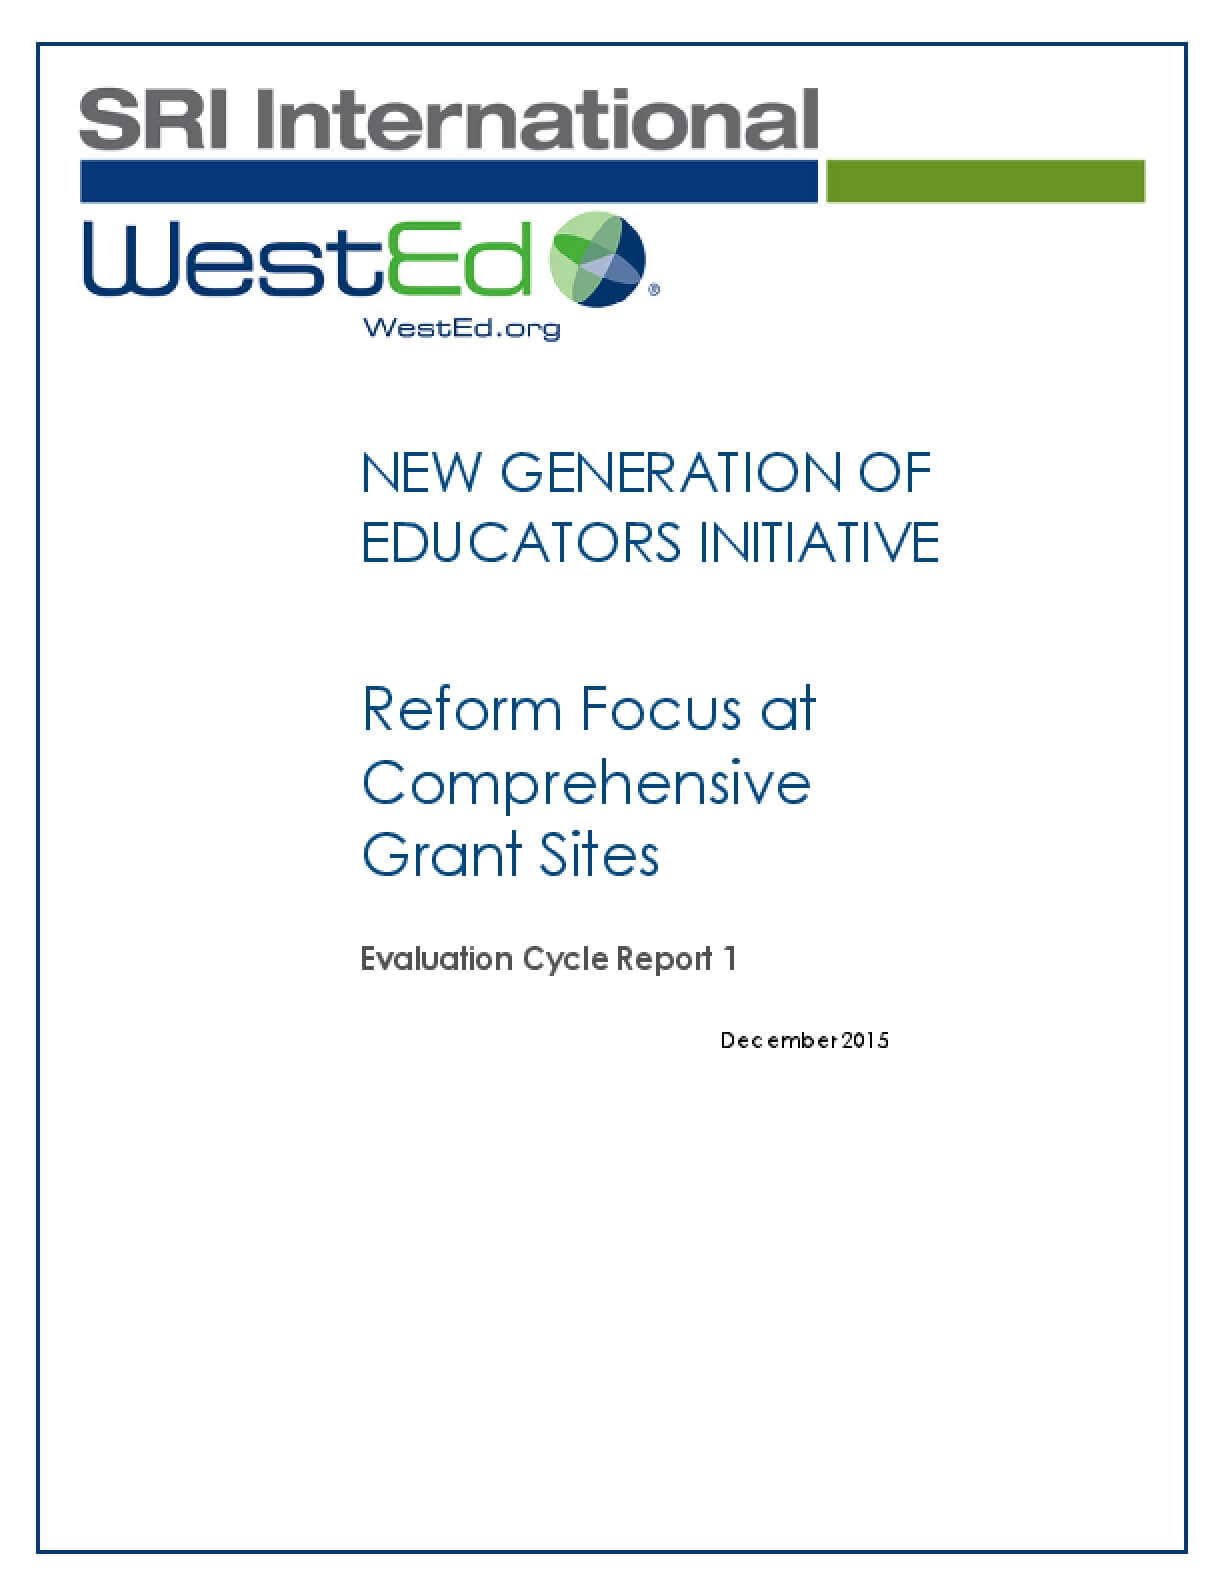 New Generation of Educators Initiative: Reform Focus at Comprehensive Grant Sites